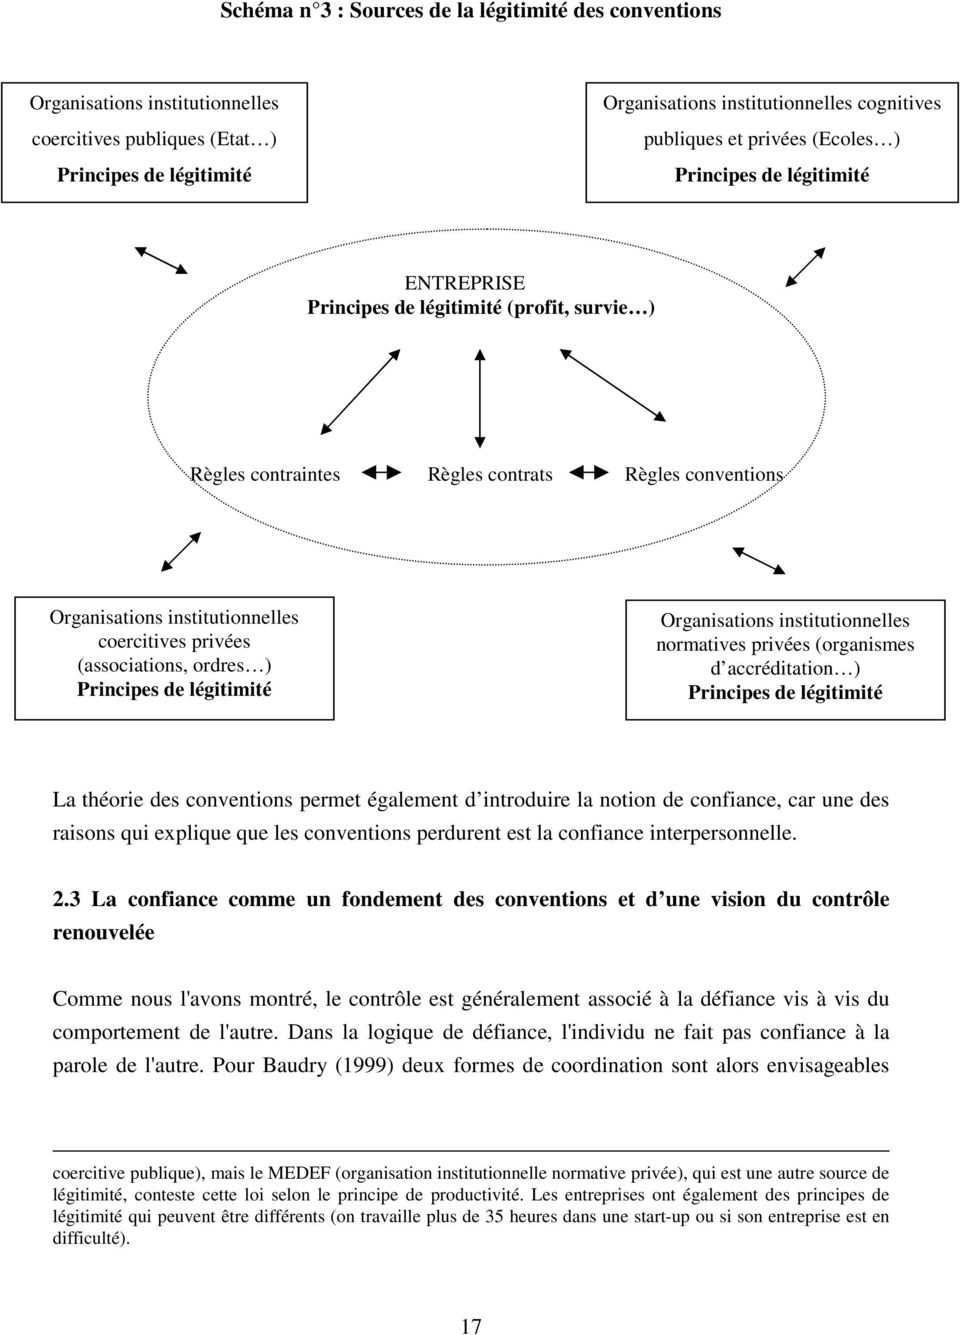 privées (associations, ordres ) Principes de légitimité Organisations institutionnelles normatives privées (organismes d accréditation ) Principes de légitimité La théorie des conventions permet